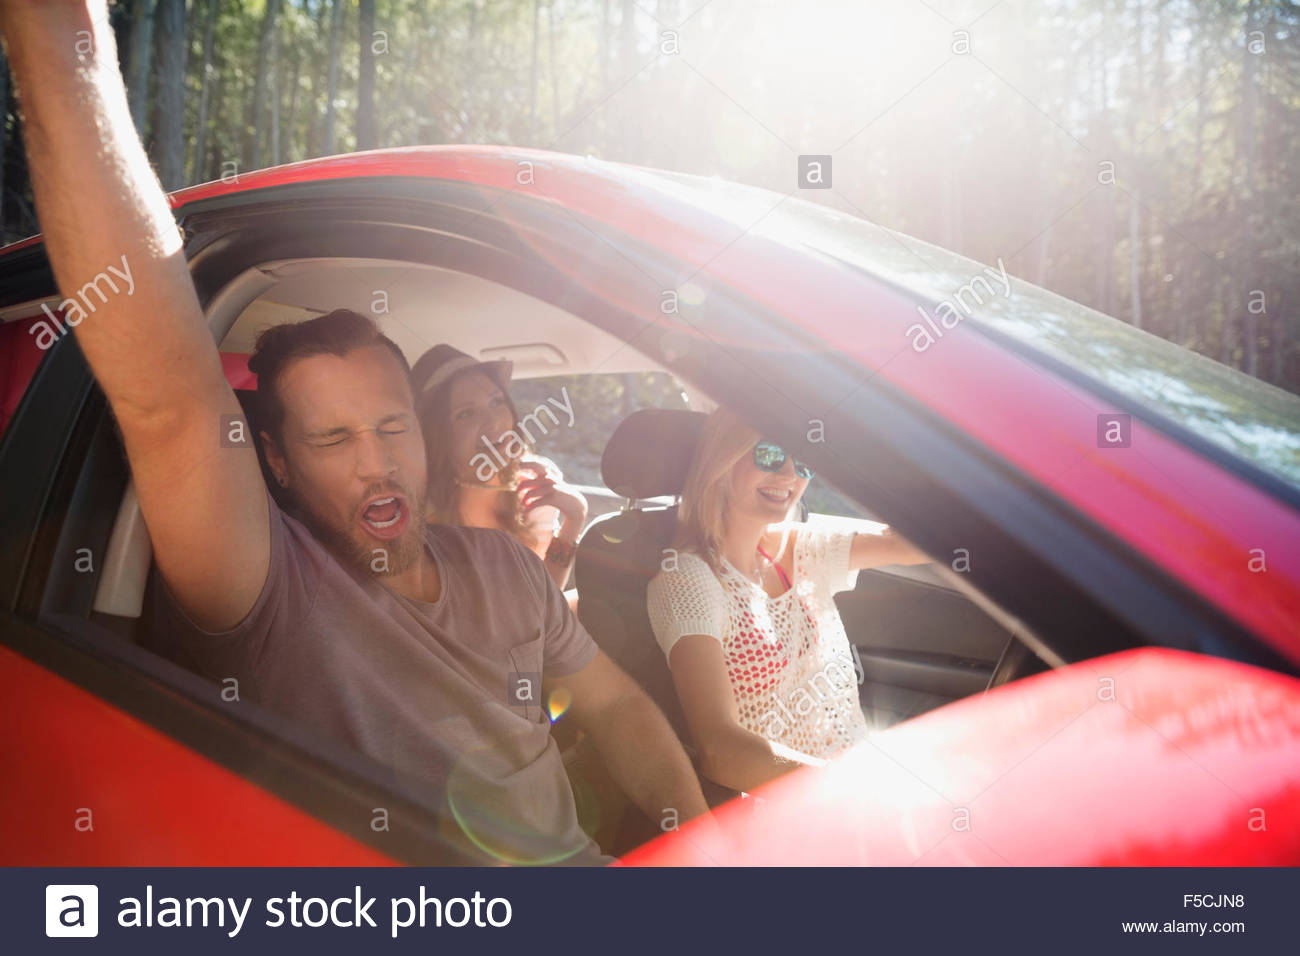 Enthusiastic friends singing and cheering in car - Stock Image